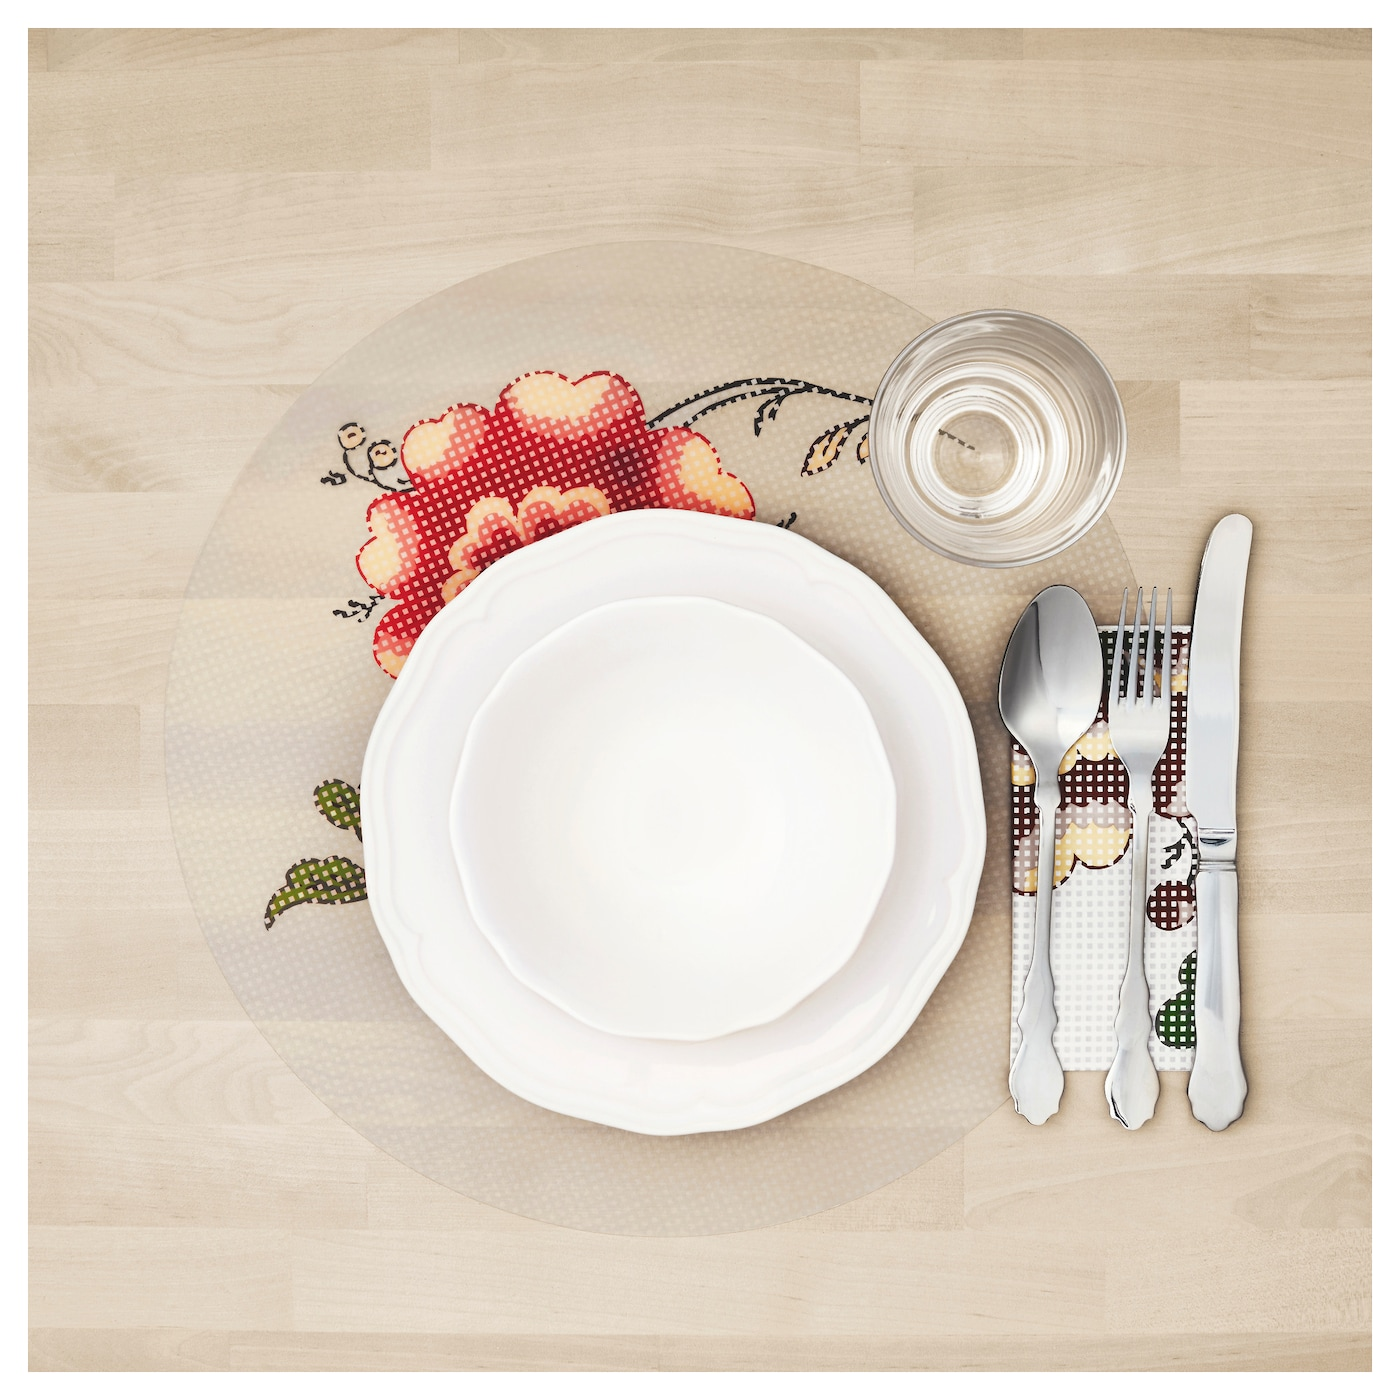 IKEA INBJUDANDE place mat Protects the table top surface and reduces noise from plates and cutlery.